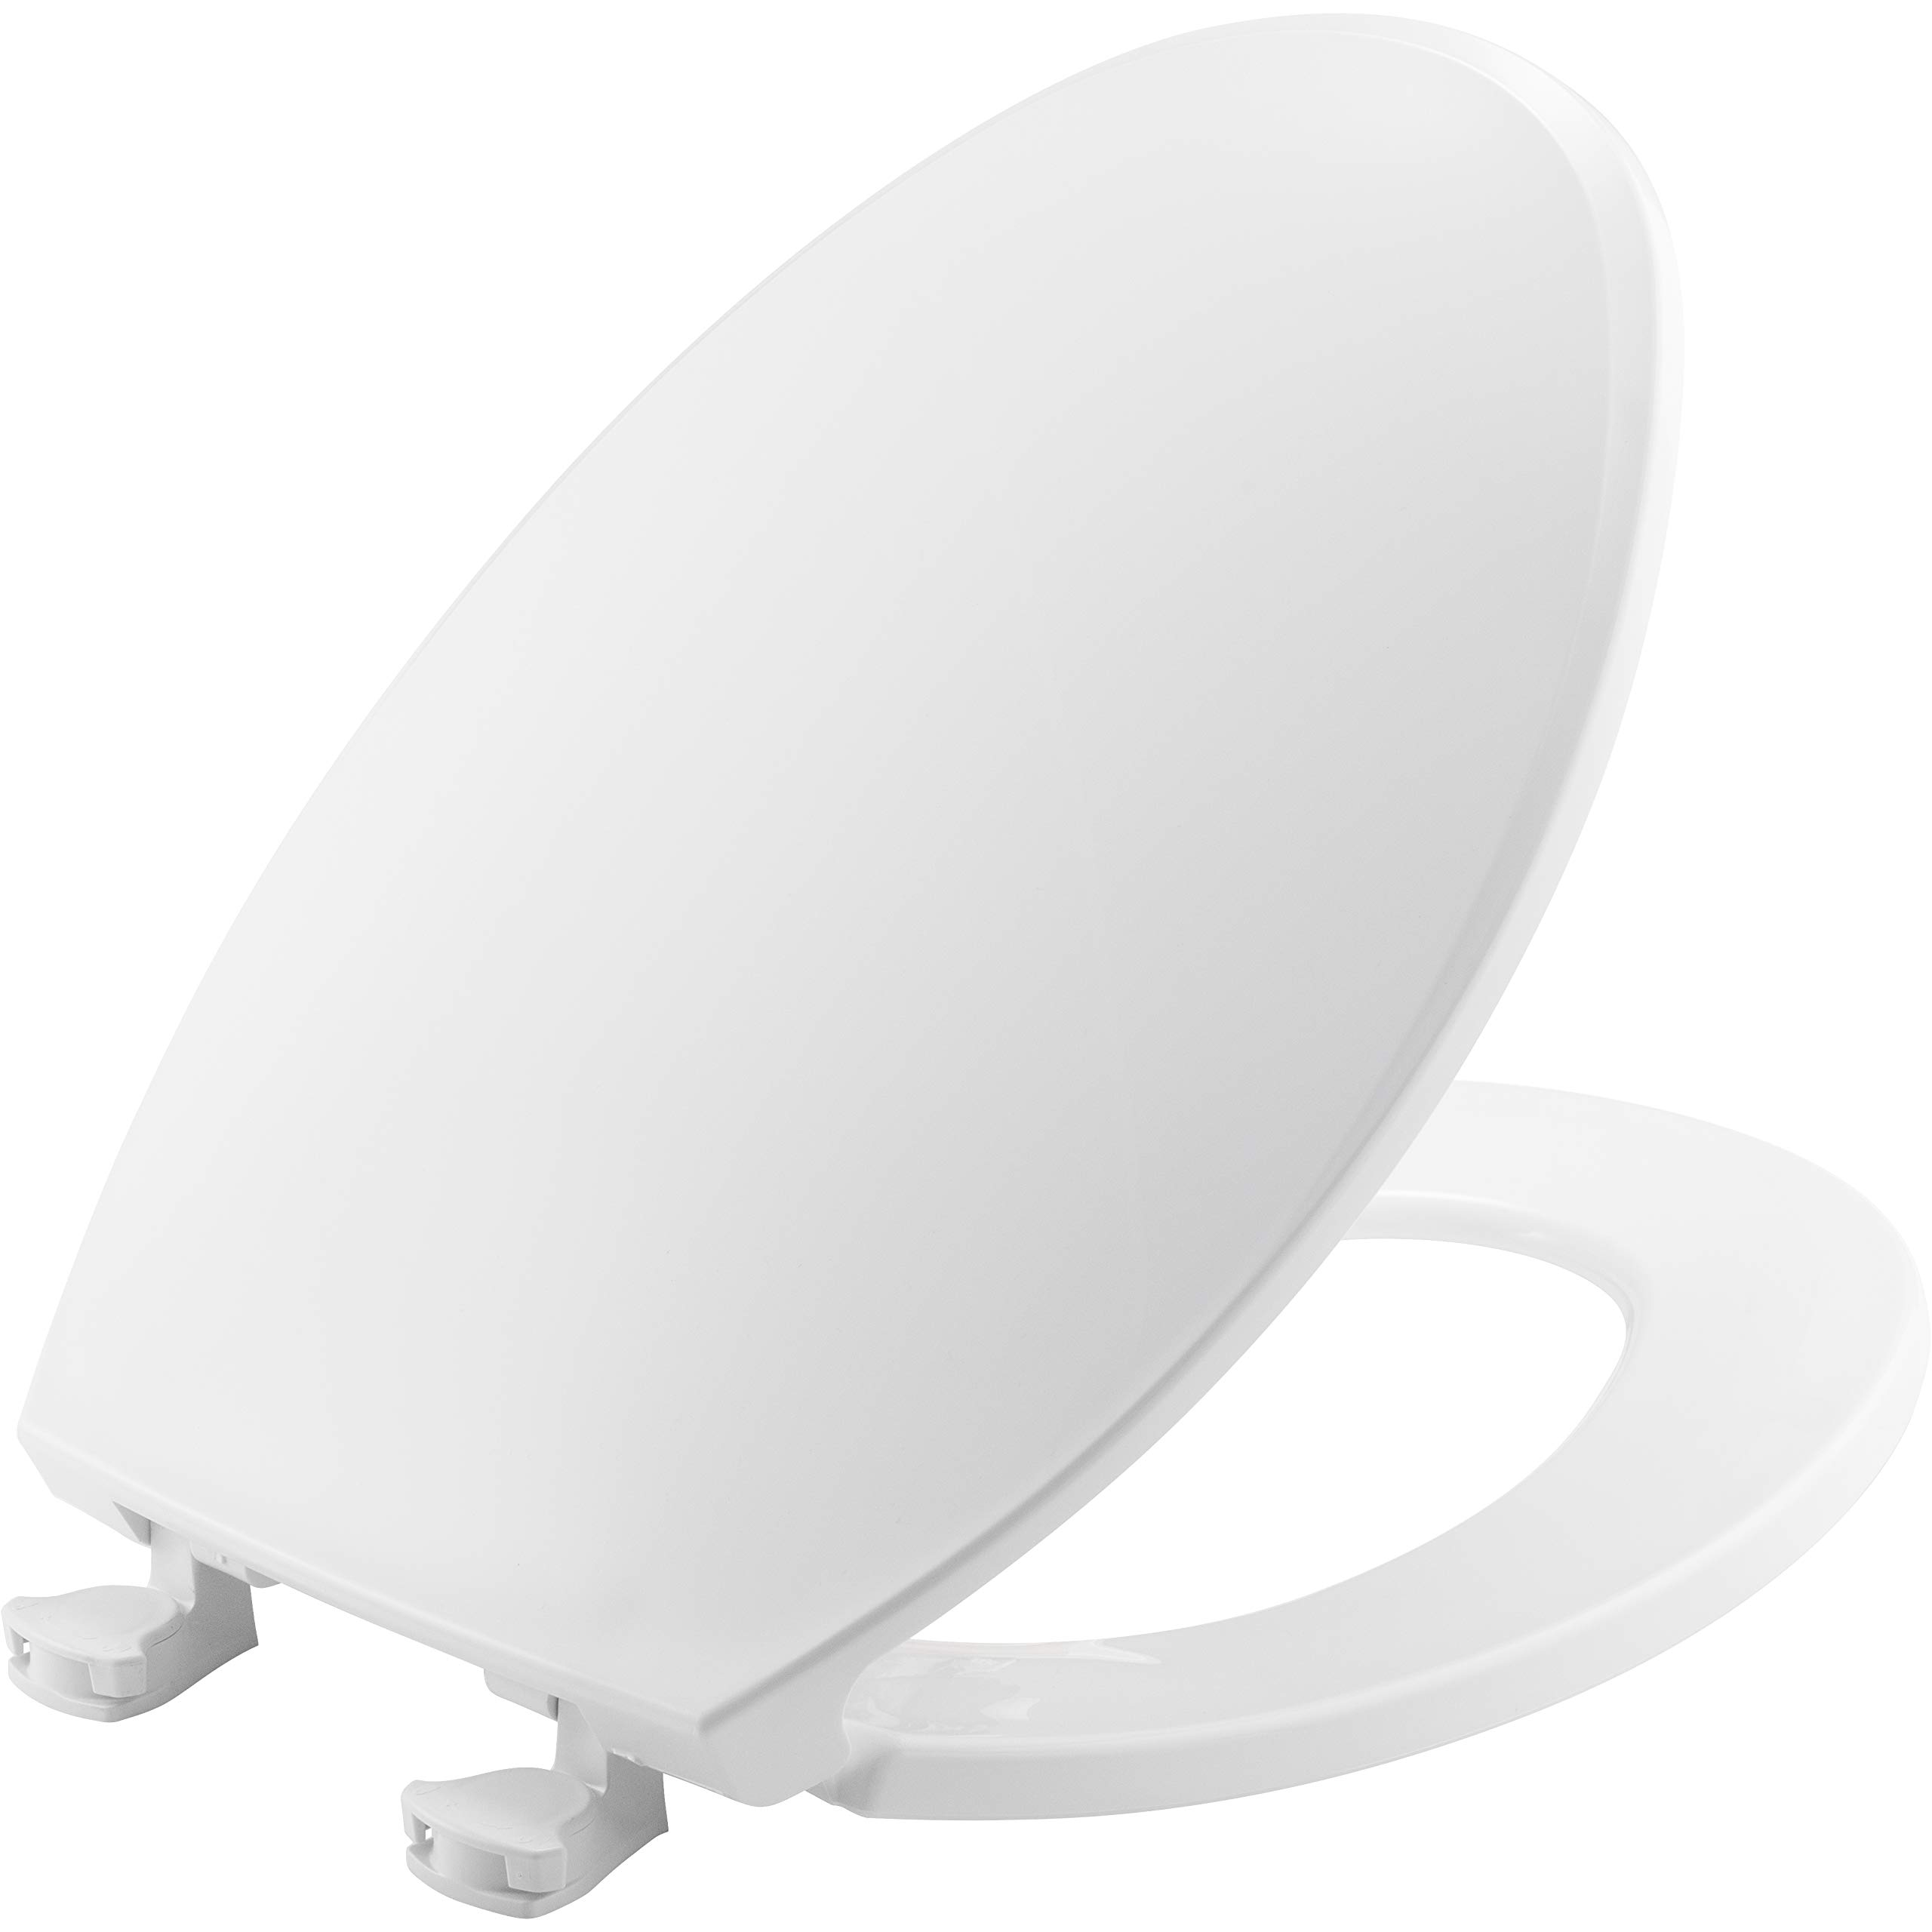 Bemis 1800EC 346 Plastic Elongated Toilet Seat with Easy Clean & Change Hinges Biscuit/Linen